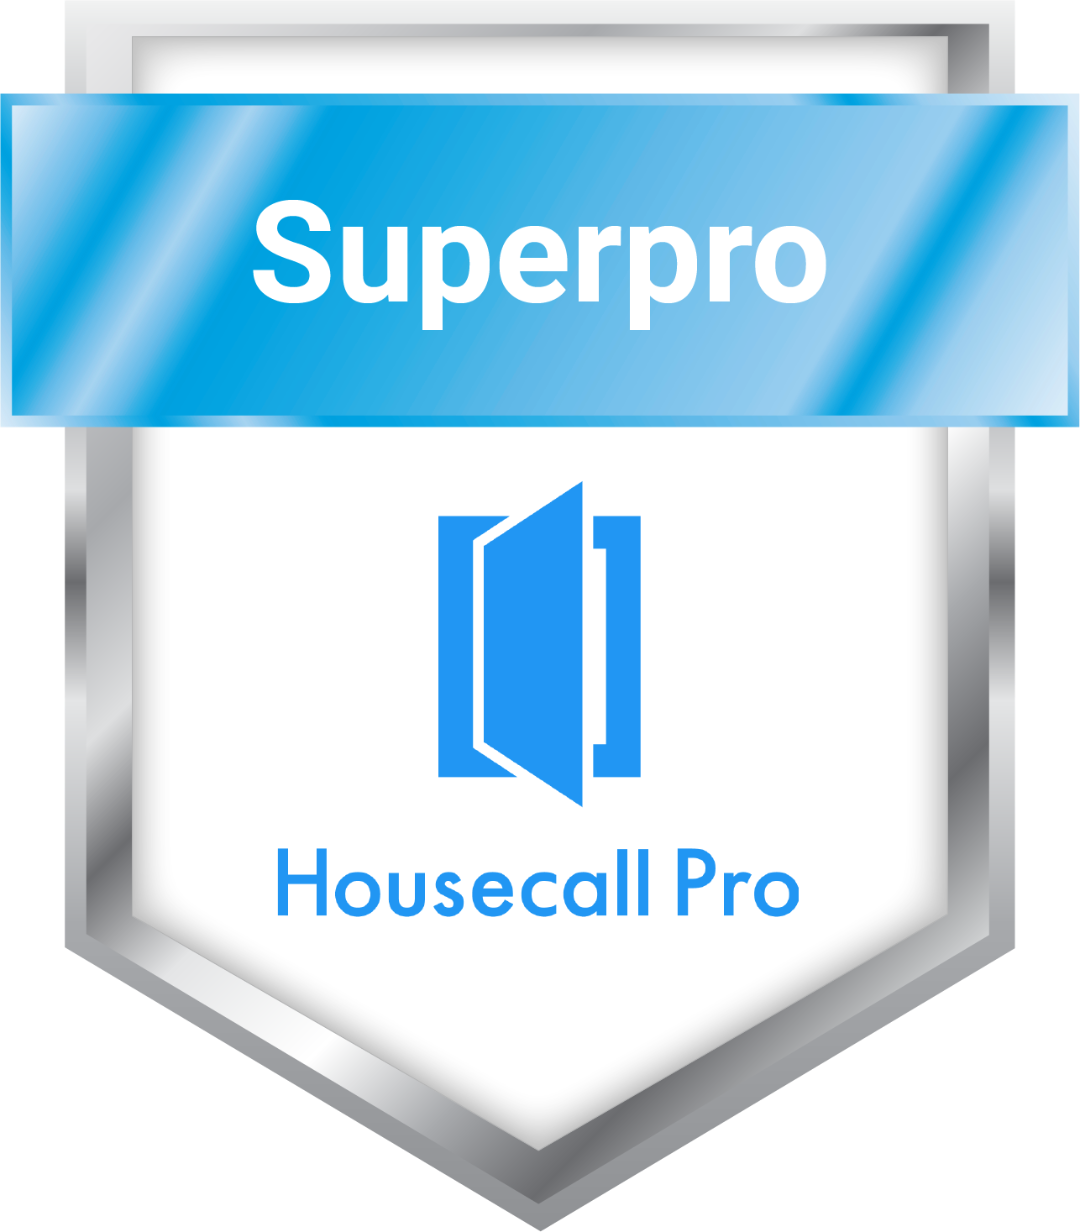 We're proud to have earned the Superpro Housecall Pro Badge